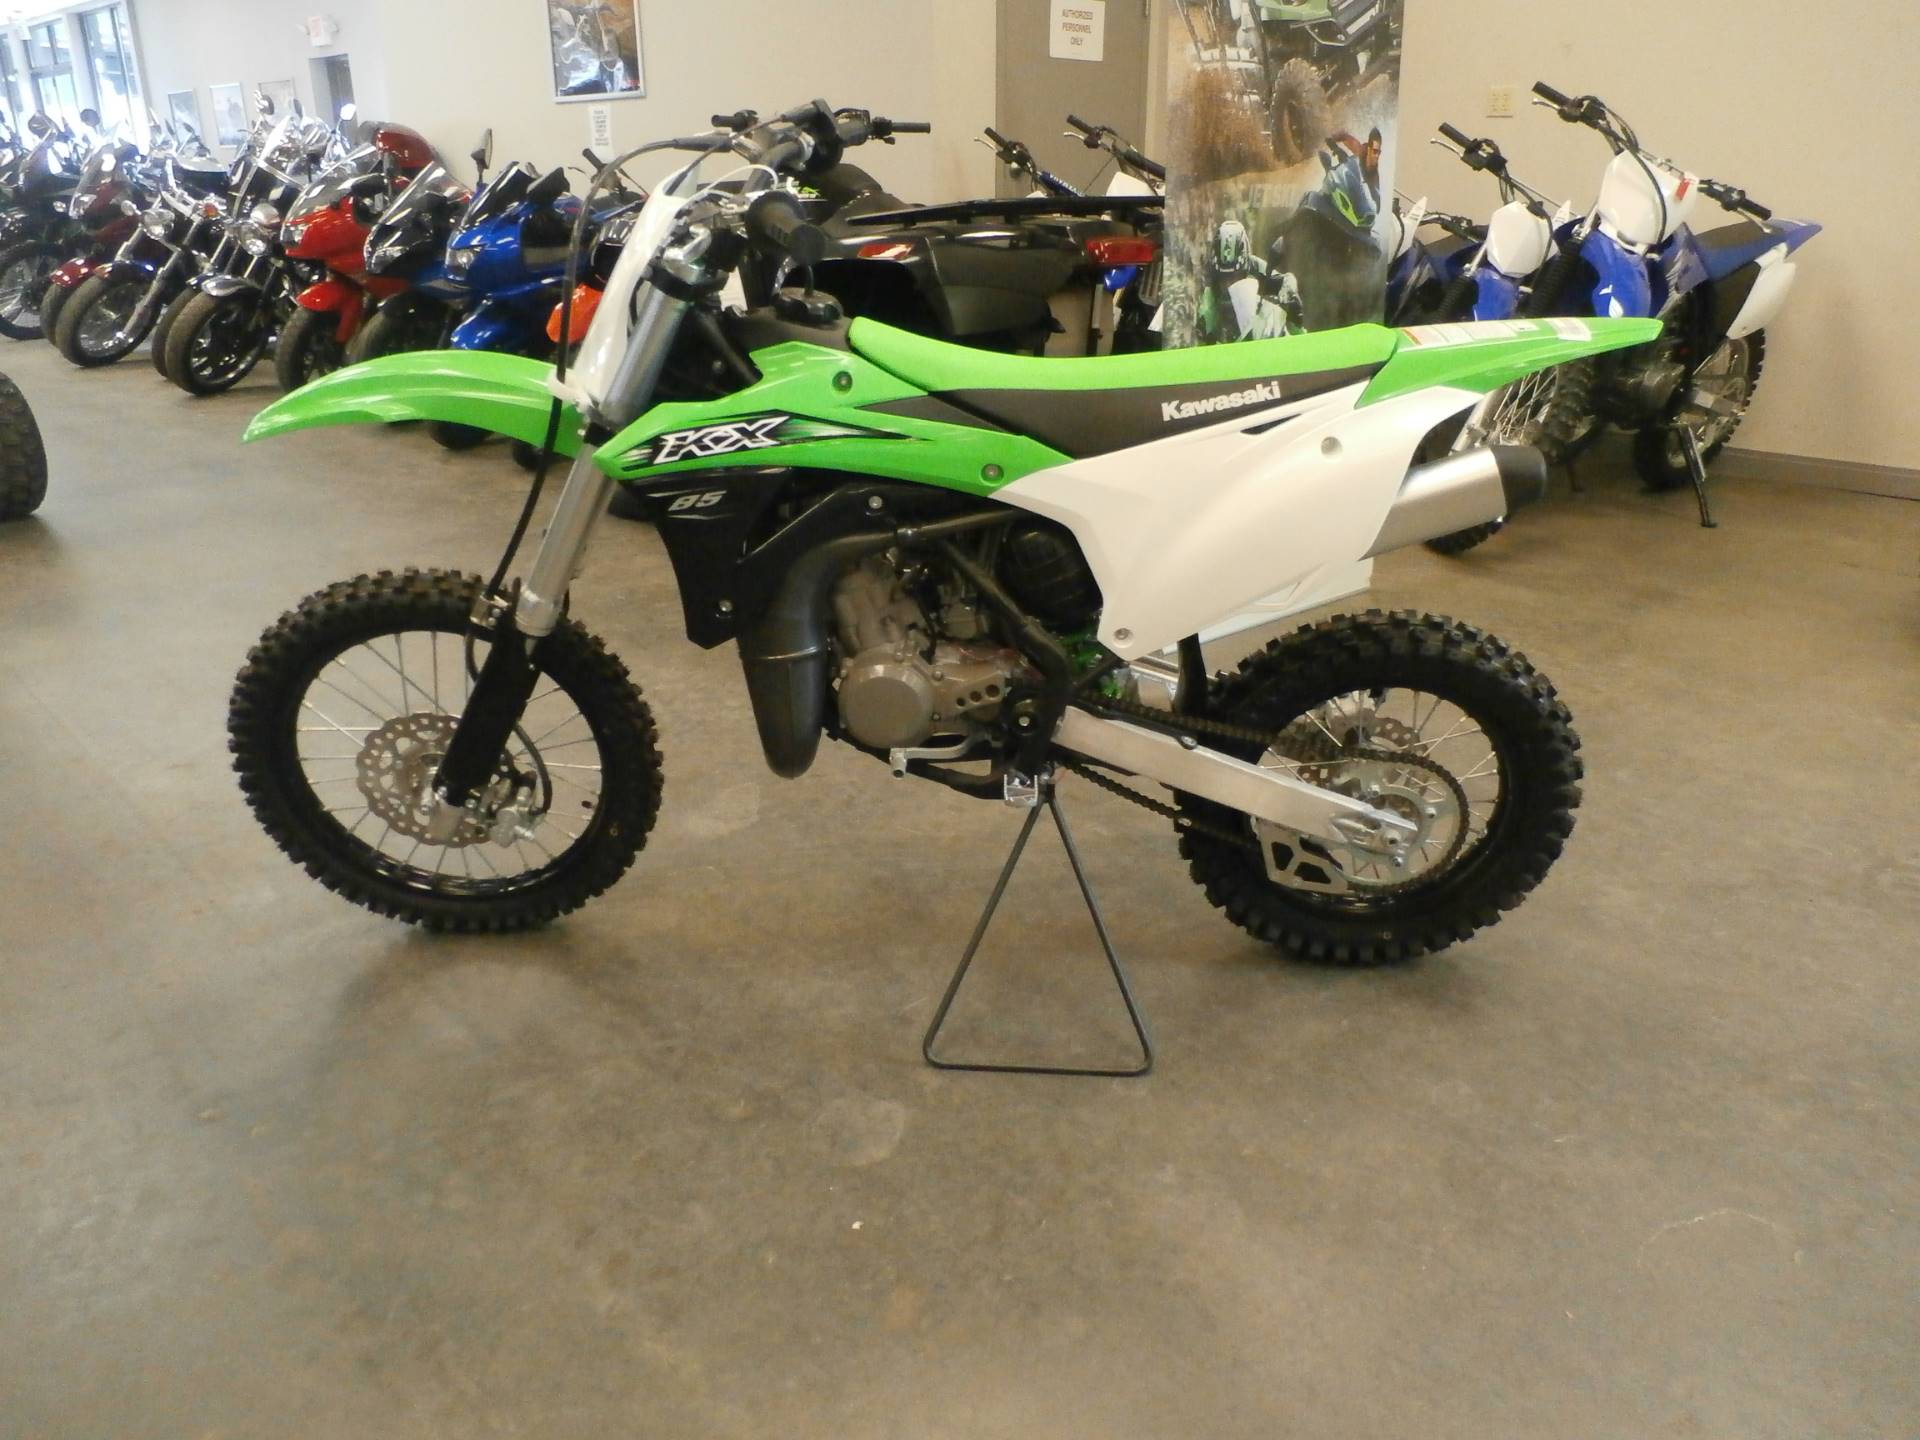 2016 Kawasaki KX85 for sale 44